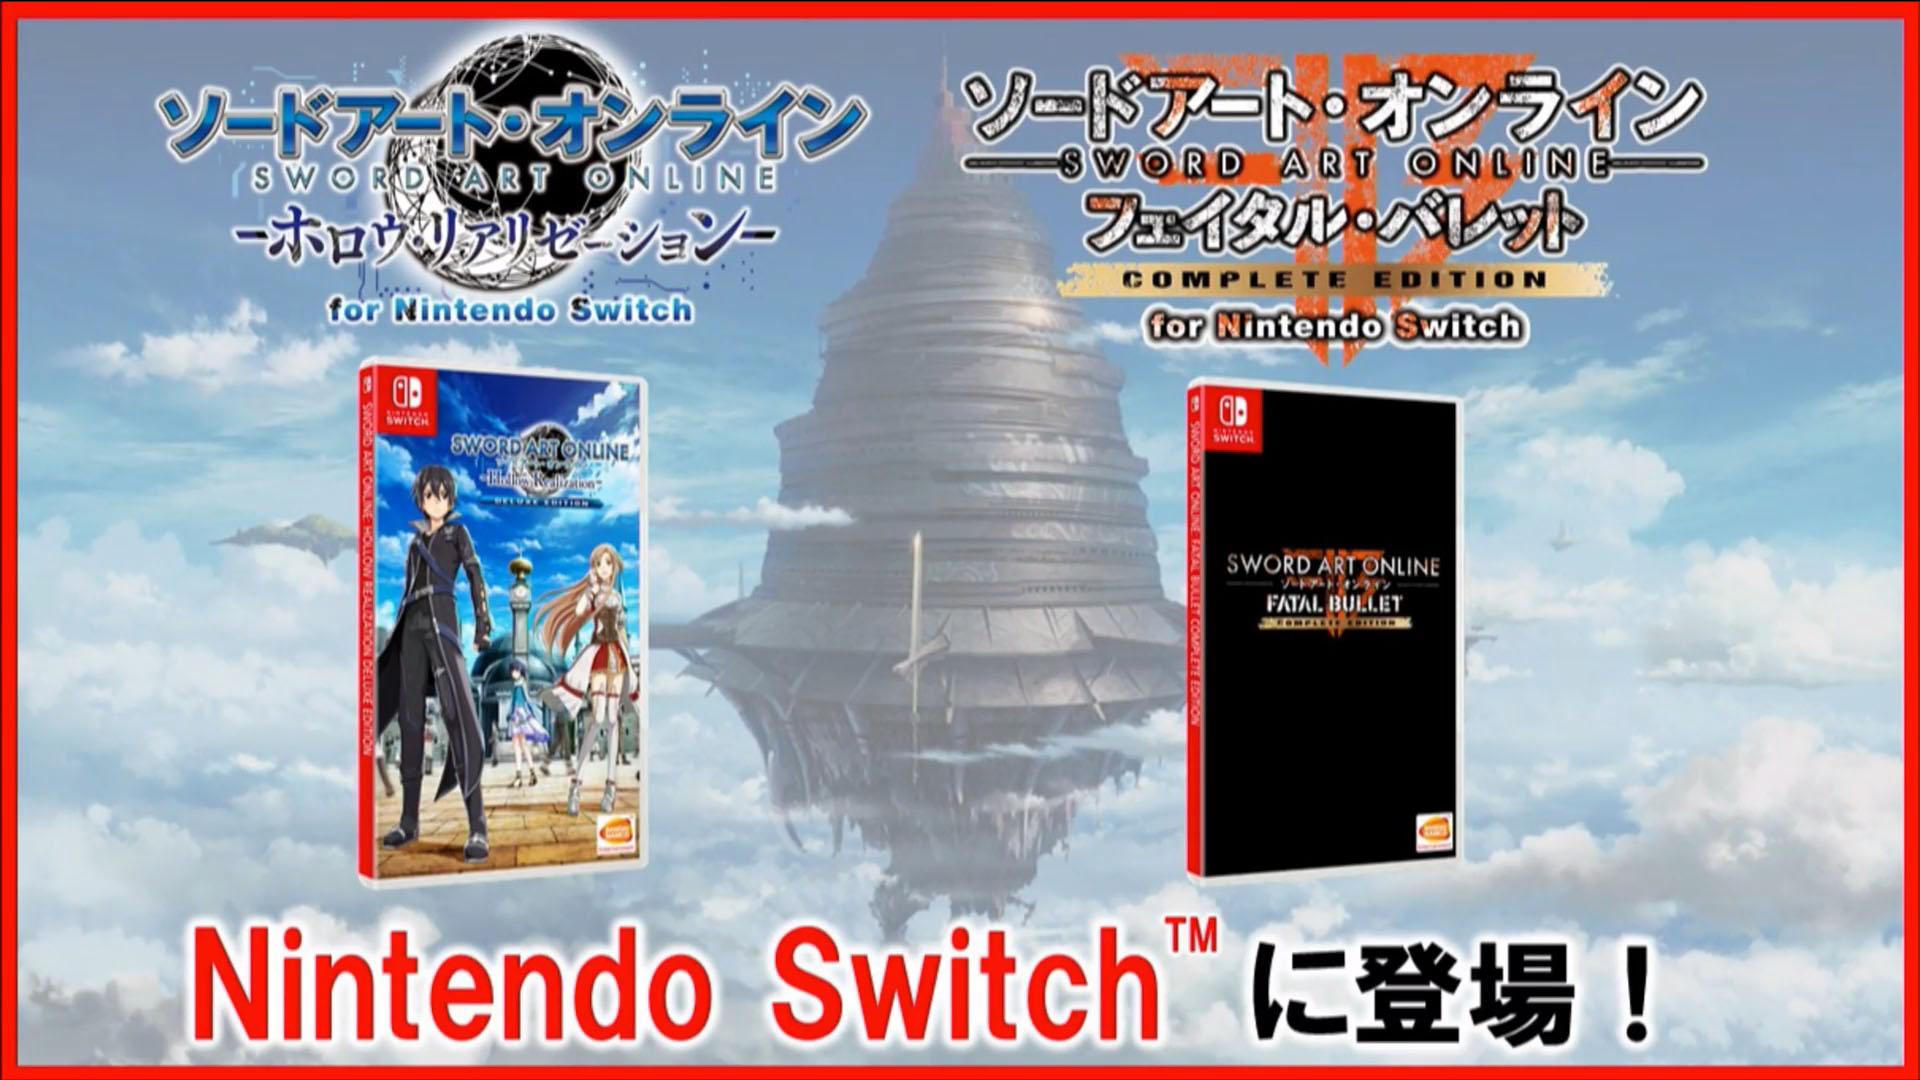 Versões para Nintendo Switch de Sword Art Online: Hollow Realization e Sword Art Online: Fatal Bullet Complete Edition.